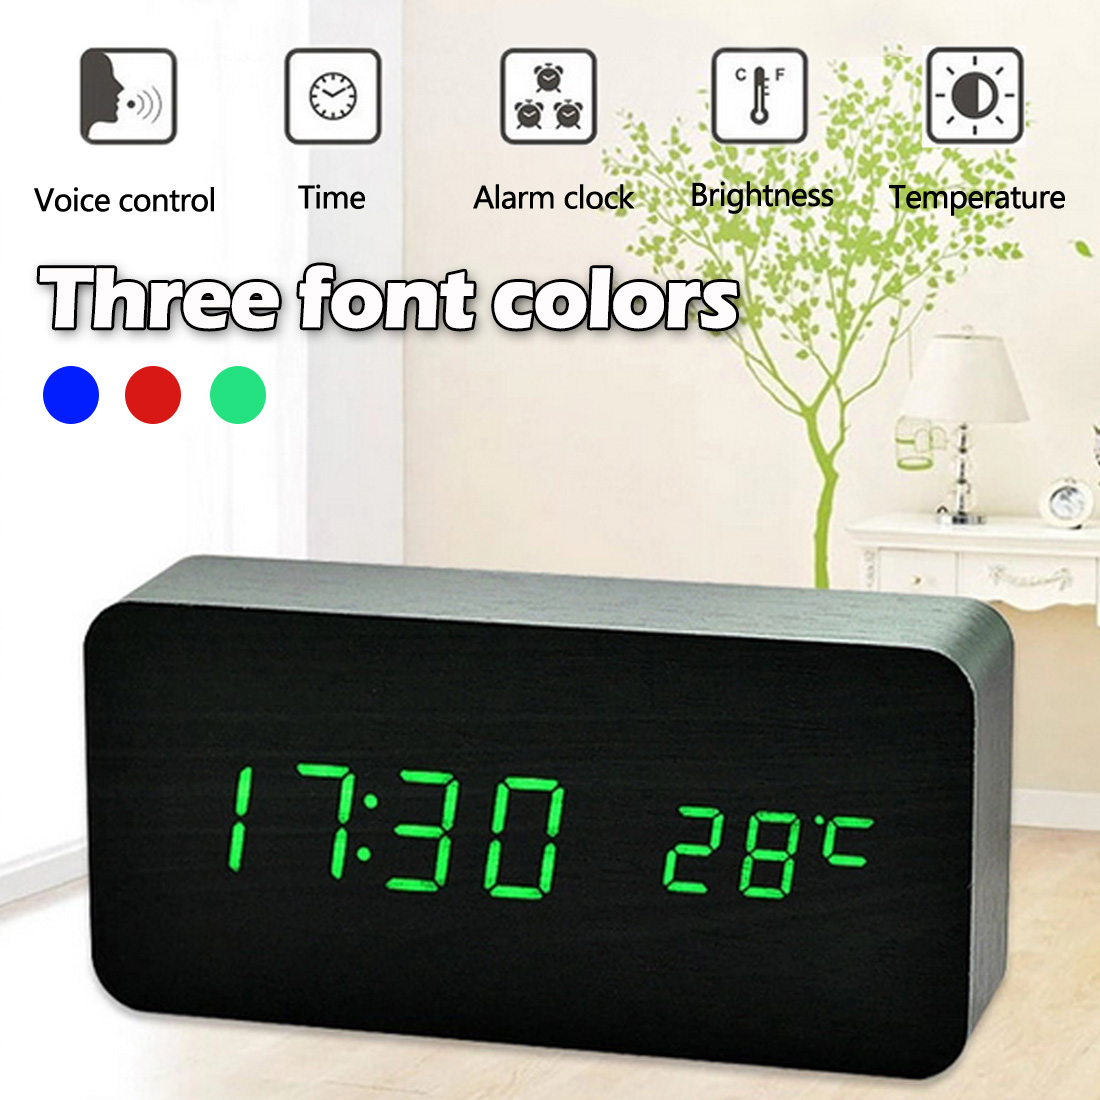 Devoted Wooden Led Temperature Control Electronic Clock Sound Control Digital Led Display Desktop Creative Wooden Table Clock Home & Garden